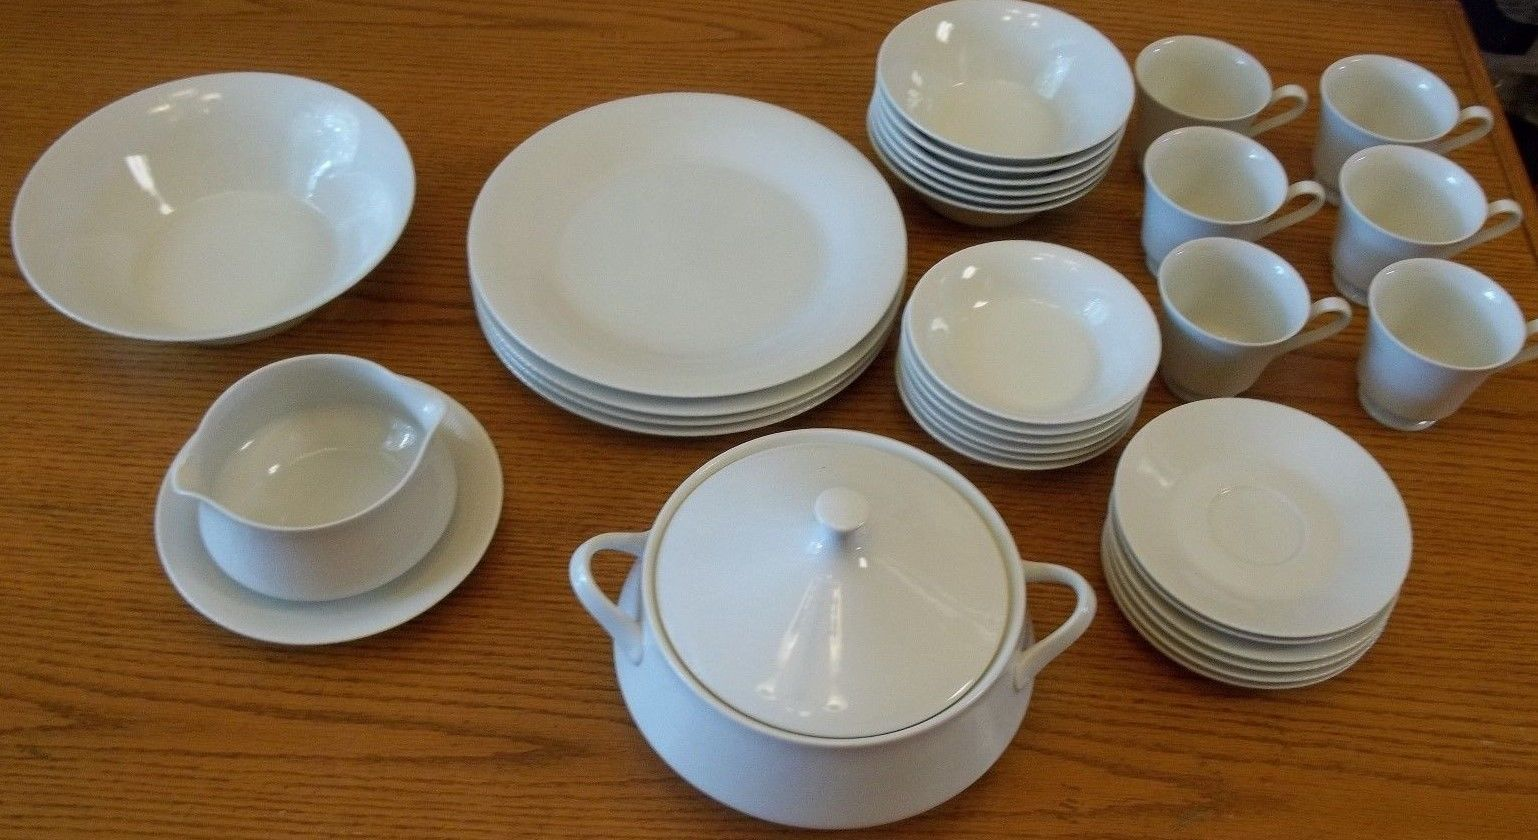 S l1600 & Fine Porcelain China Ascot Japan ~ 26 Piece and 10 similar items